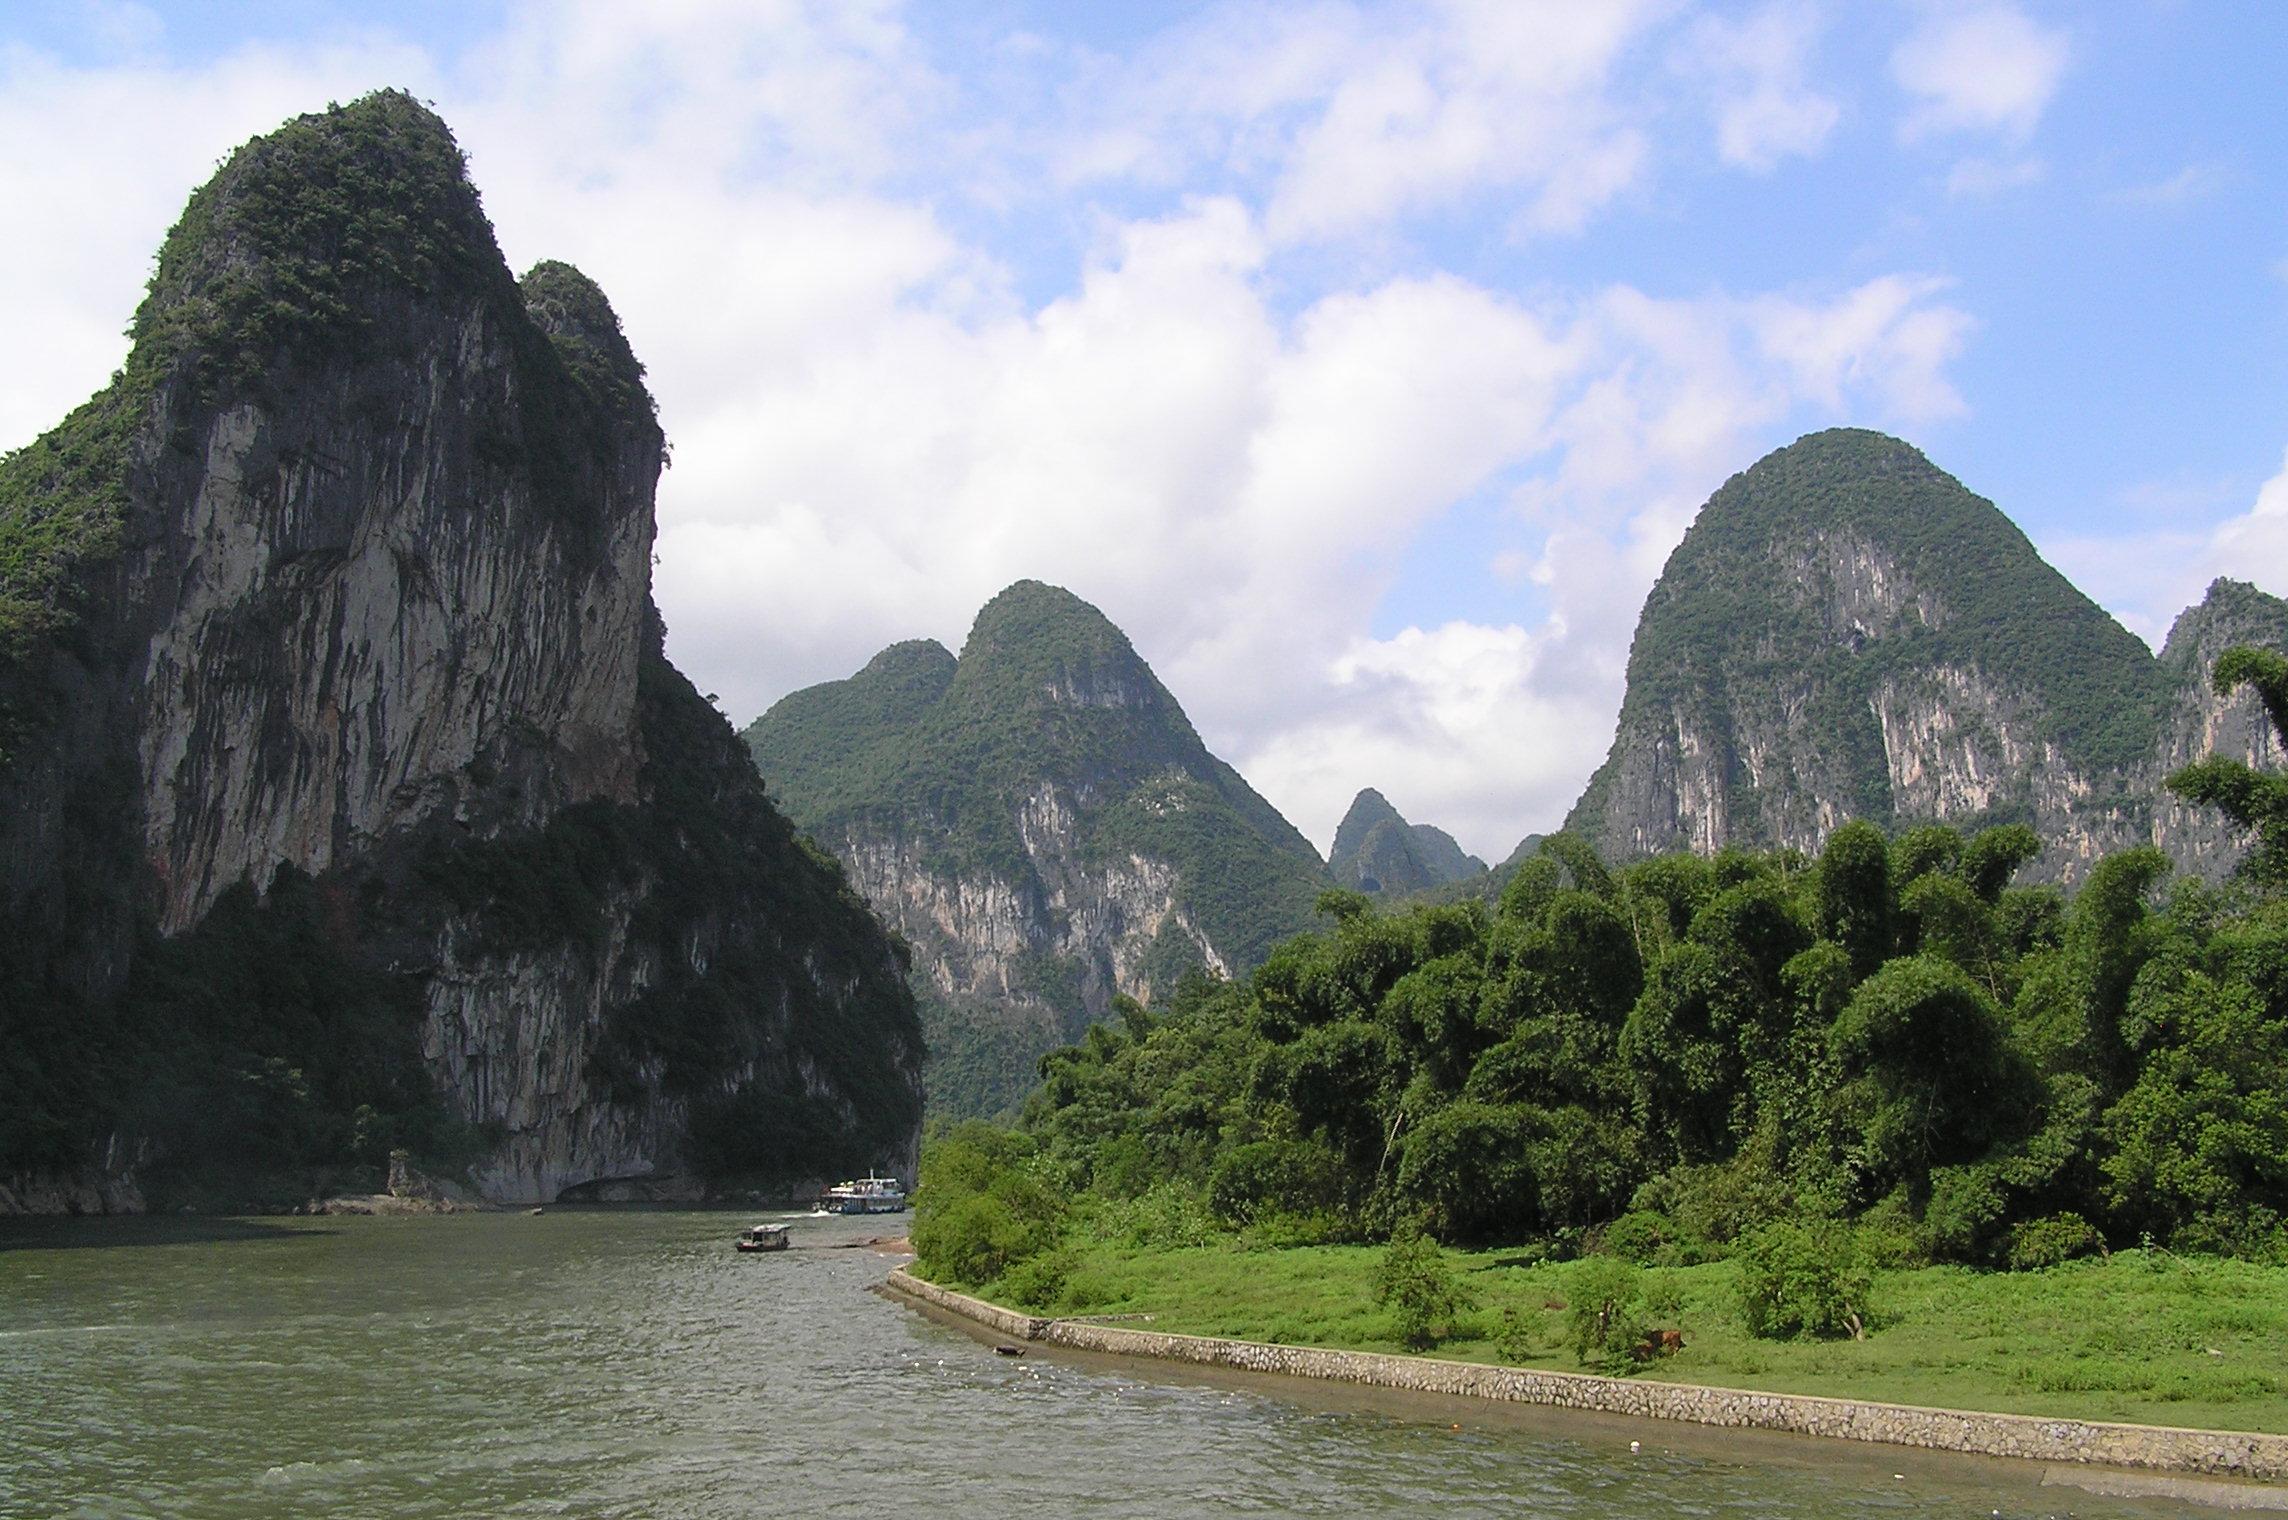 Picture of the Li river going through big mountains full of vegetation. A couple of small boats can be seen on the river.